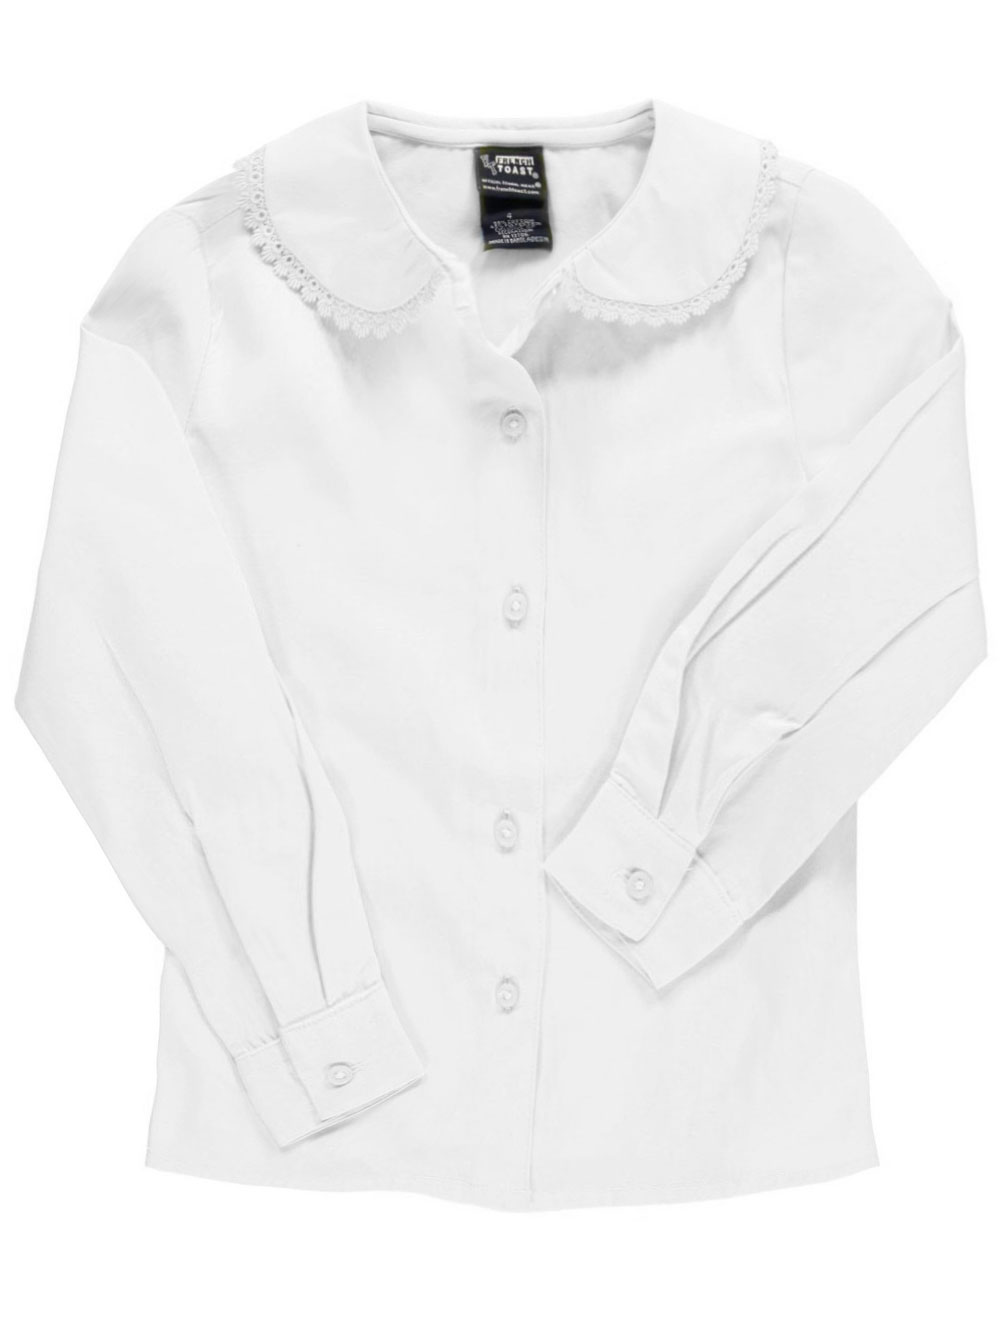 Image of French Toast School Uniform Big Girls LS Blouse with Lace Edging Sizes 7  16  white 7